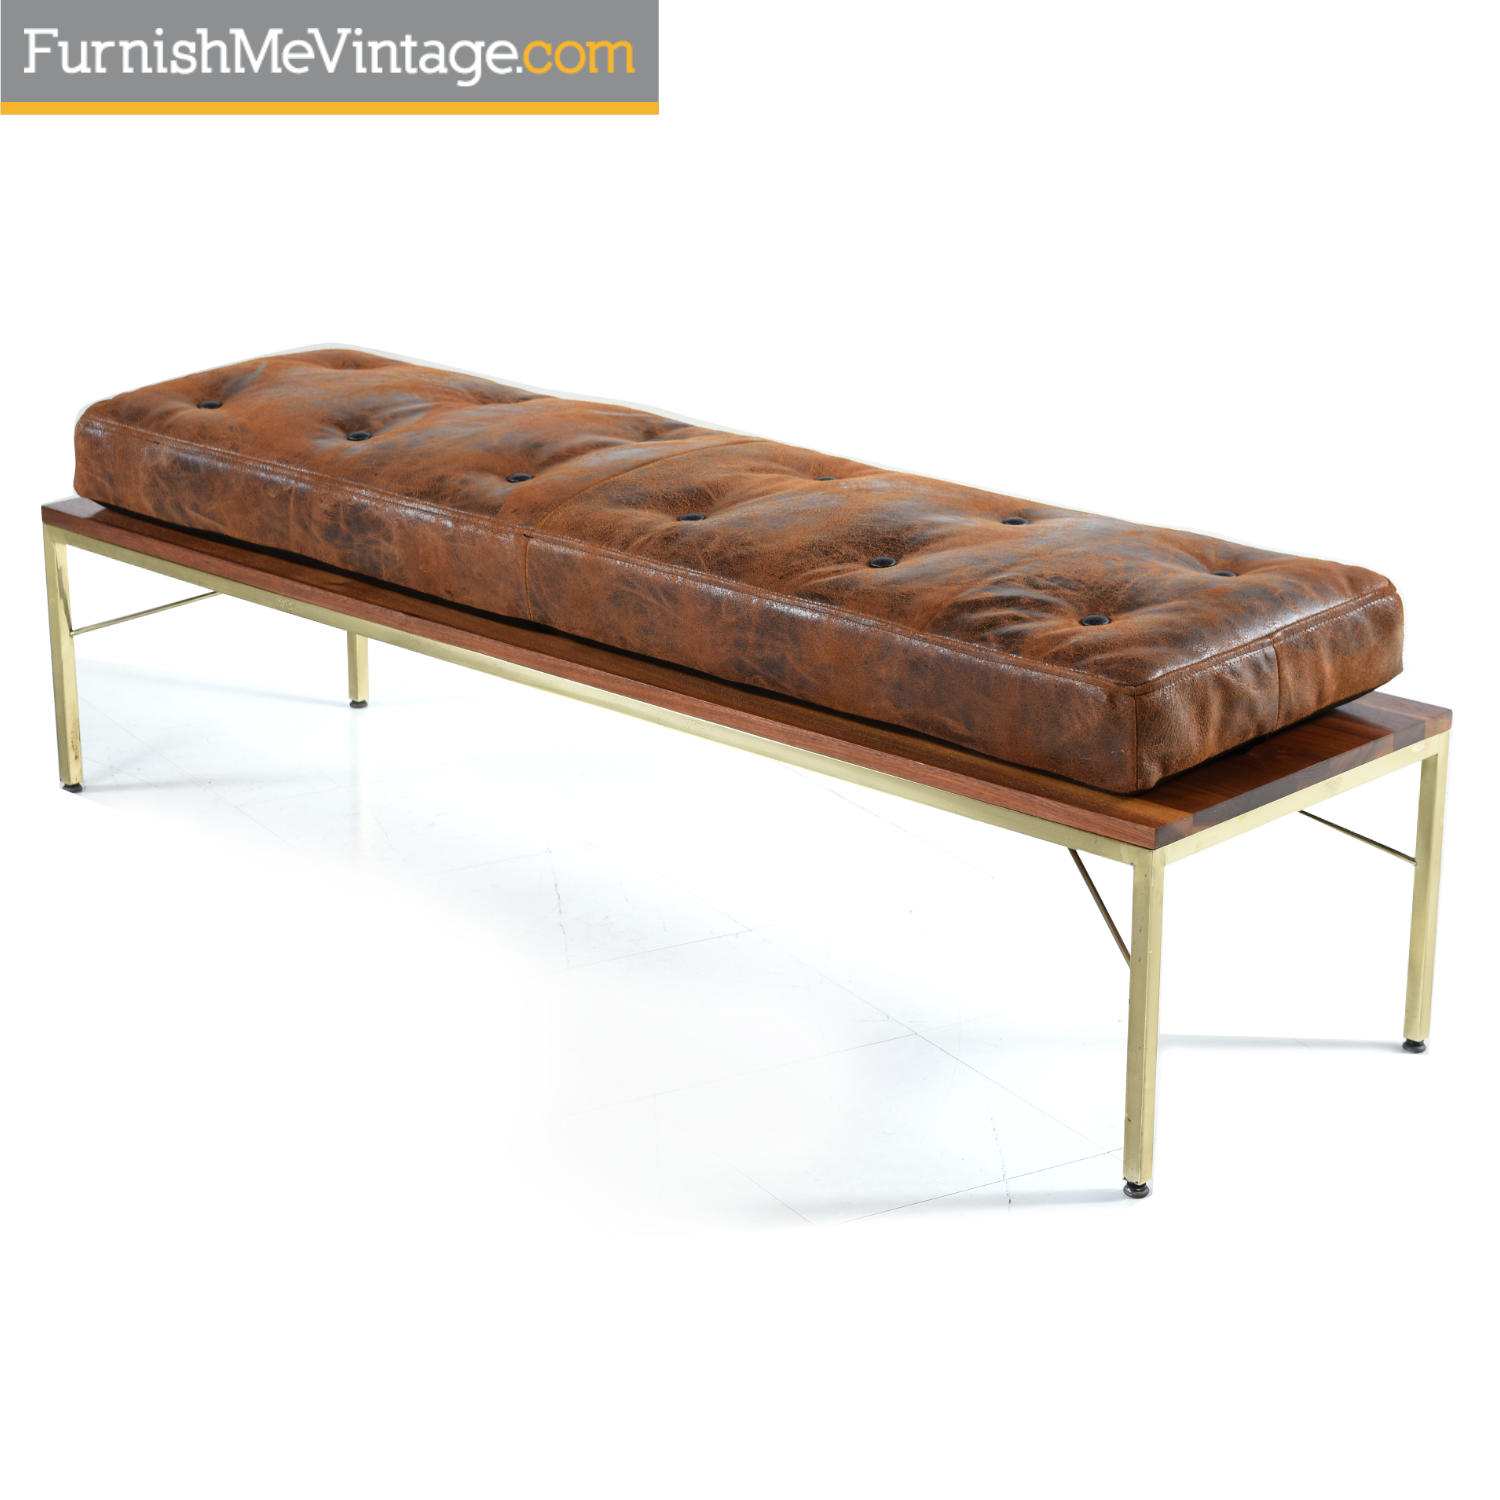 Walnut Brass And Leather Mid Century Modern Coffee Table Bench Combo